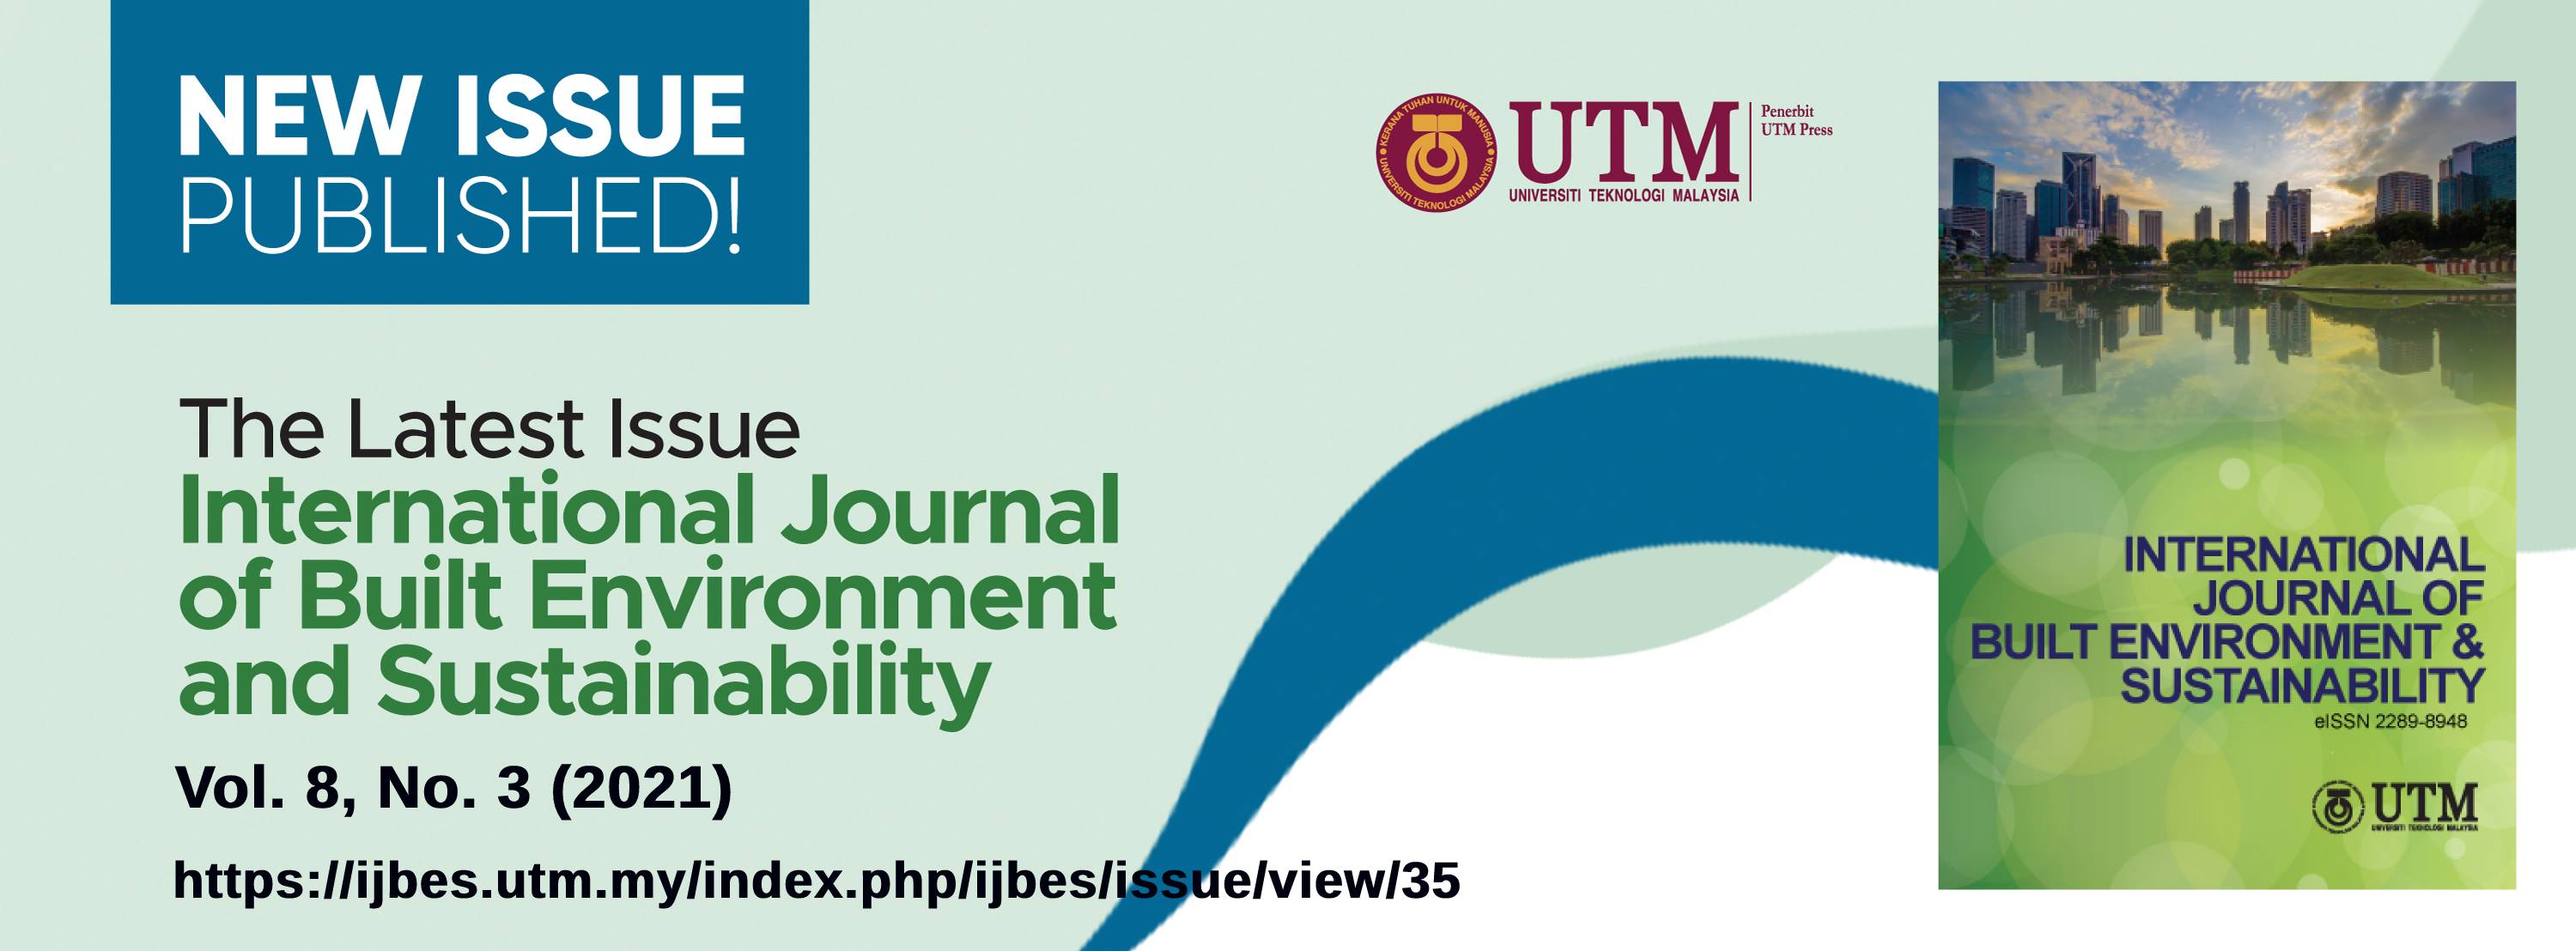 View Vol. 8 No. 3 (2021): International Journal of Built Environment and Sustainability, Volume 8, Issue 3, 2021